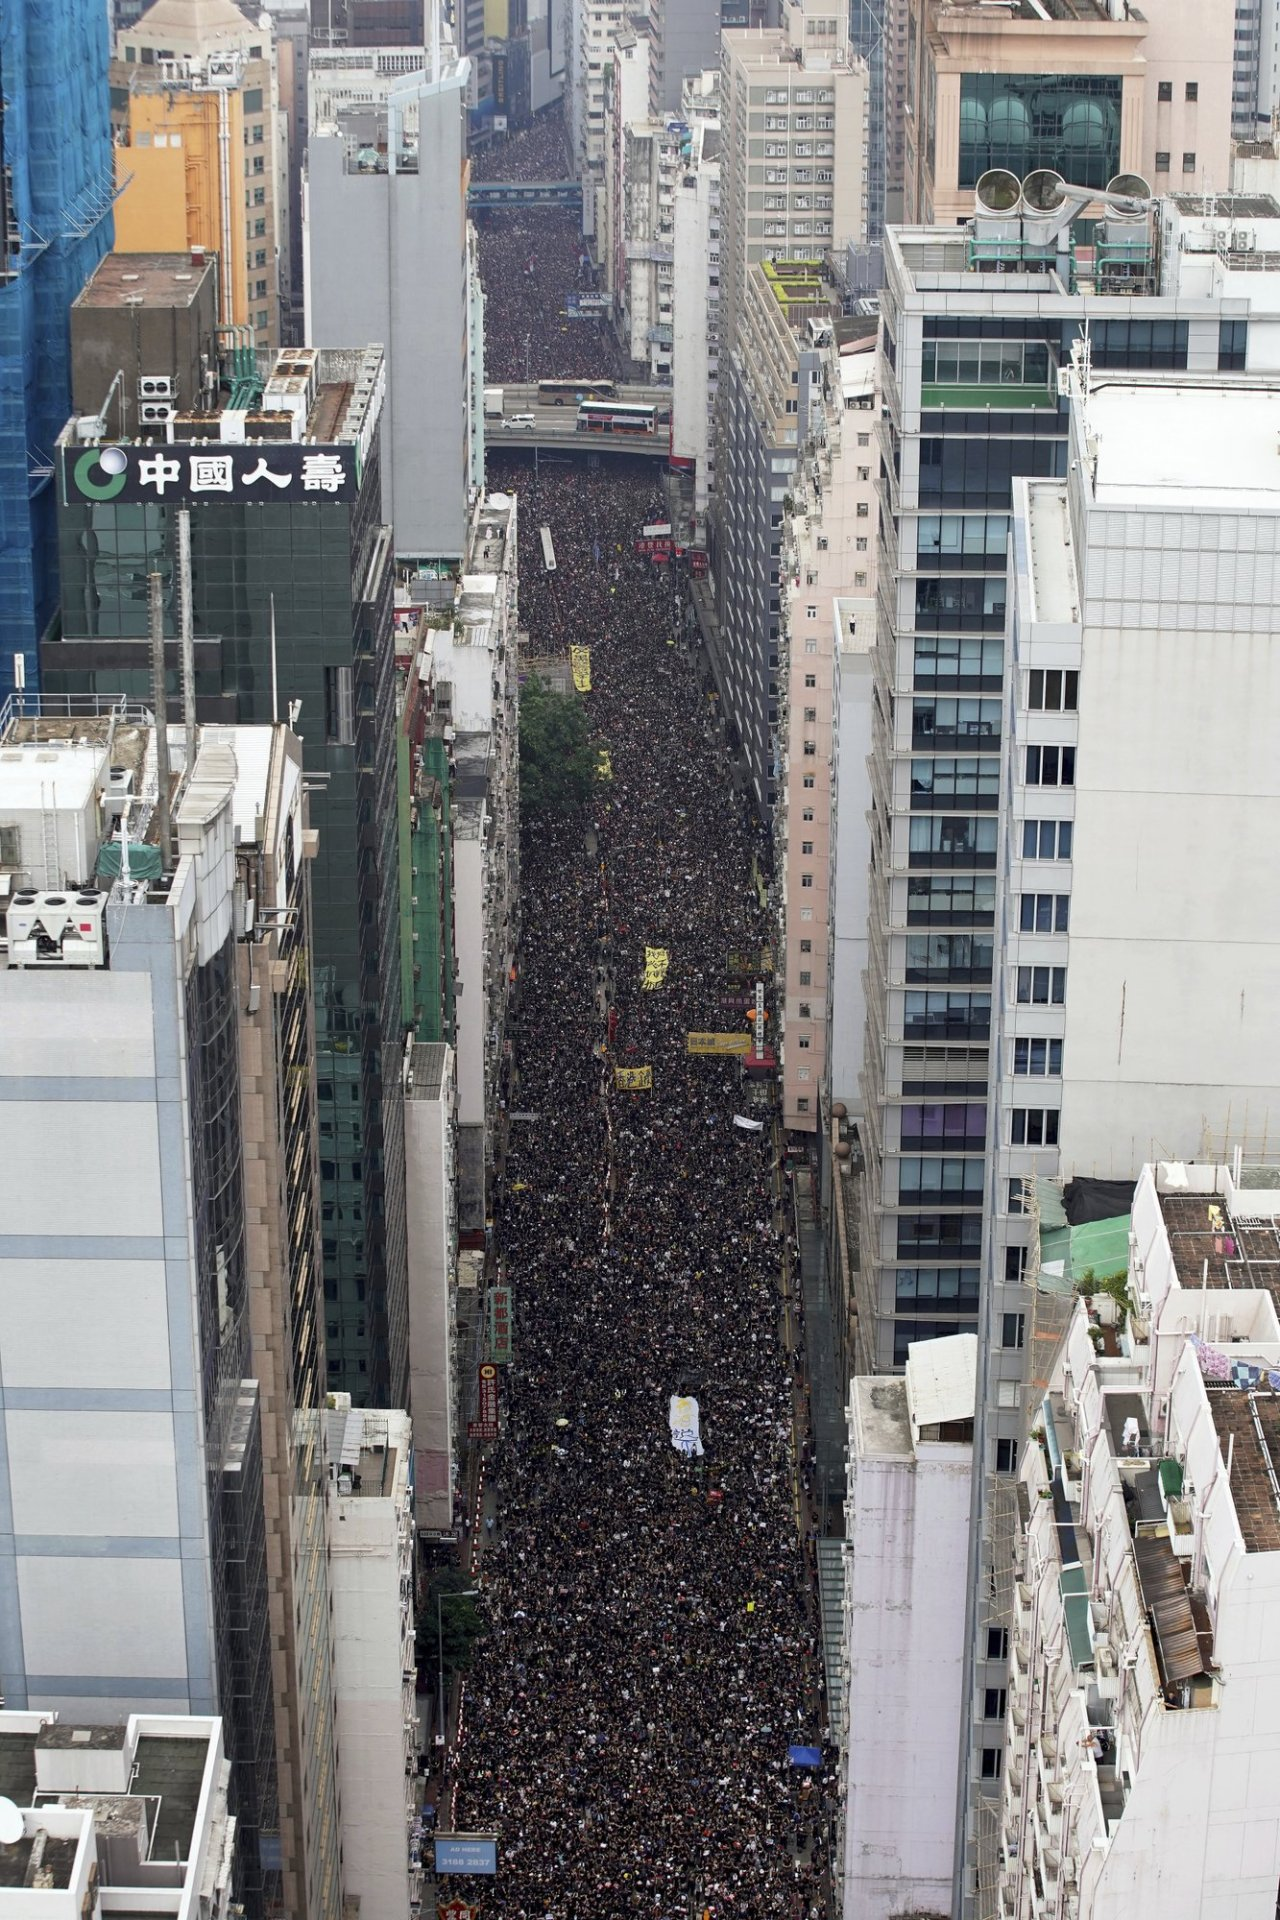 Tens of thousands of protesters carry posters and banners march through the streets as they continue to protest an extradition bill, Sunday, June 16, 2019, in Hong Kong. (AP)